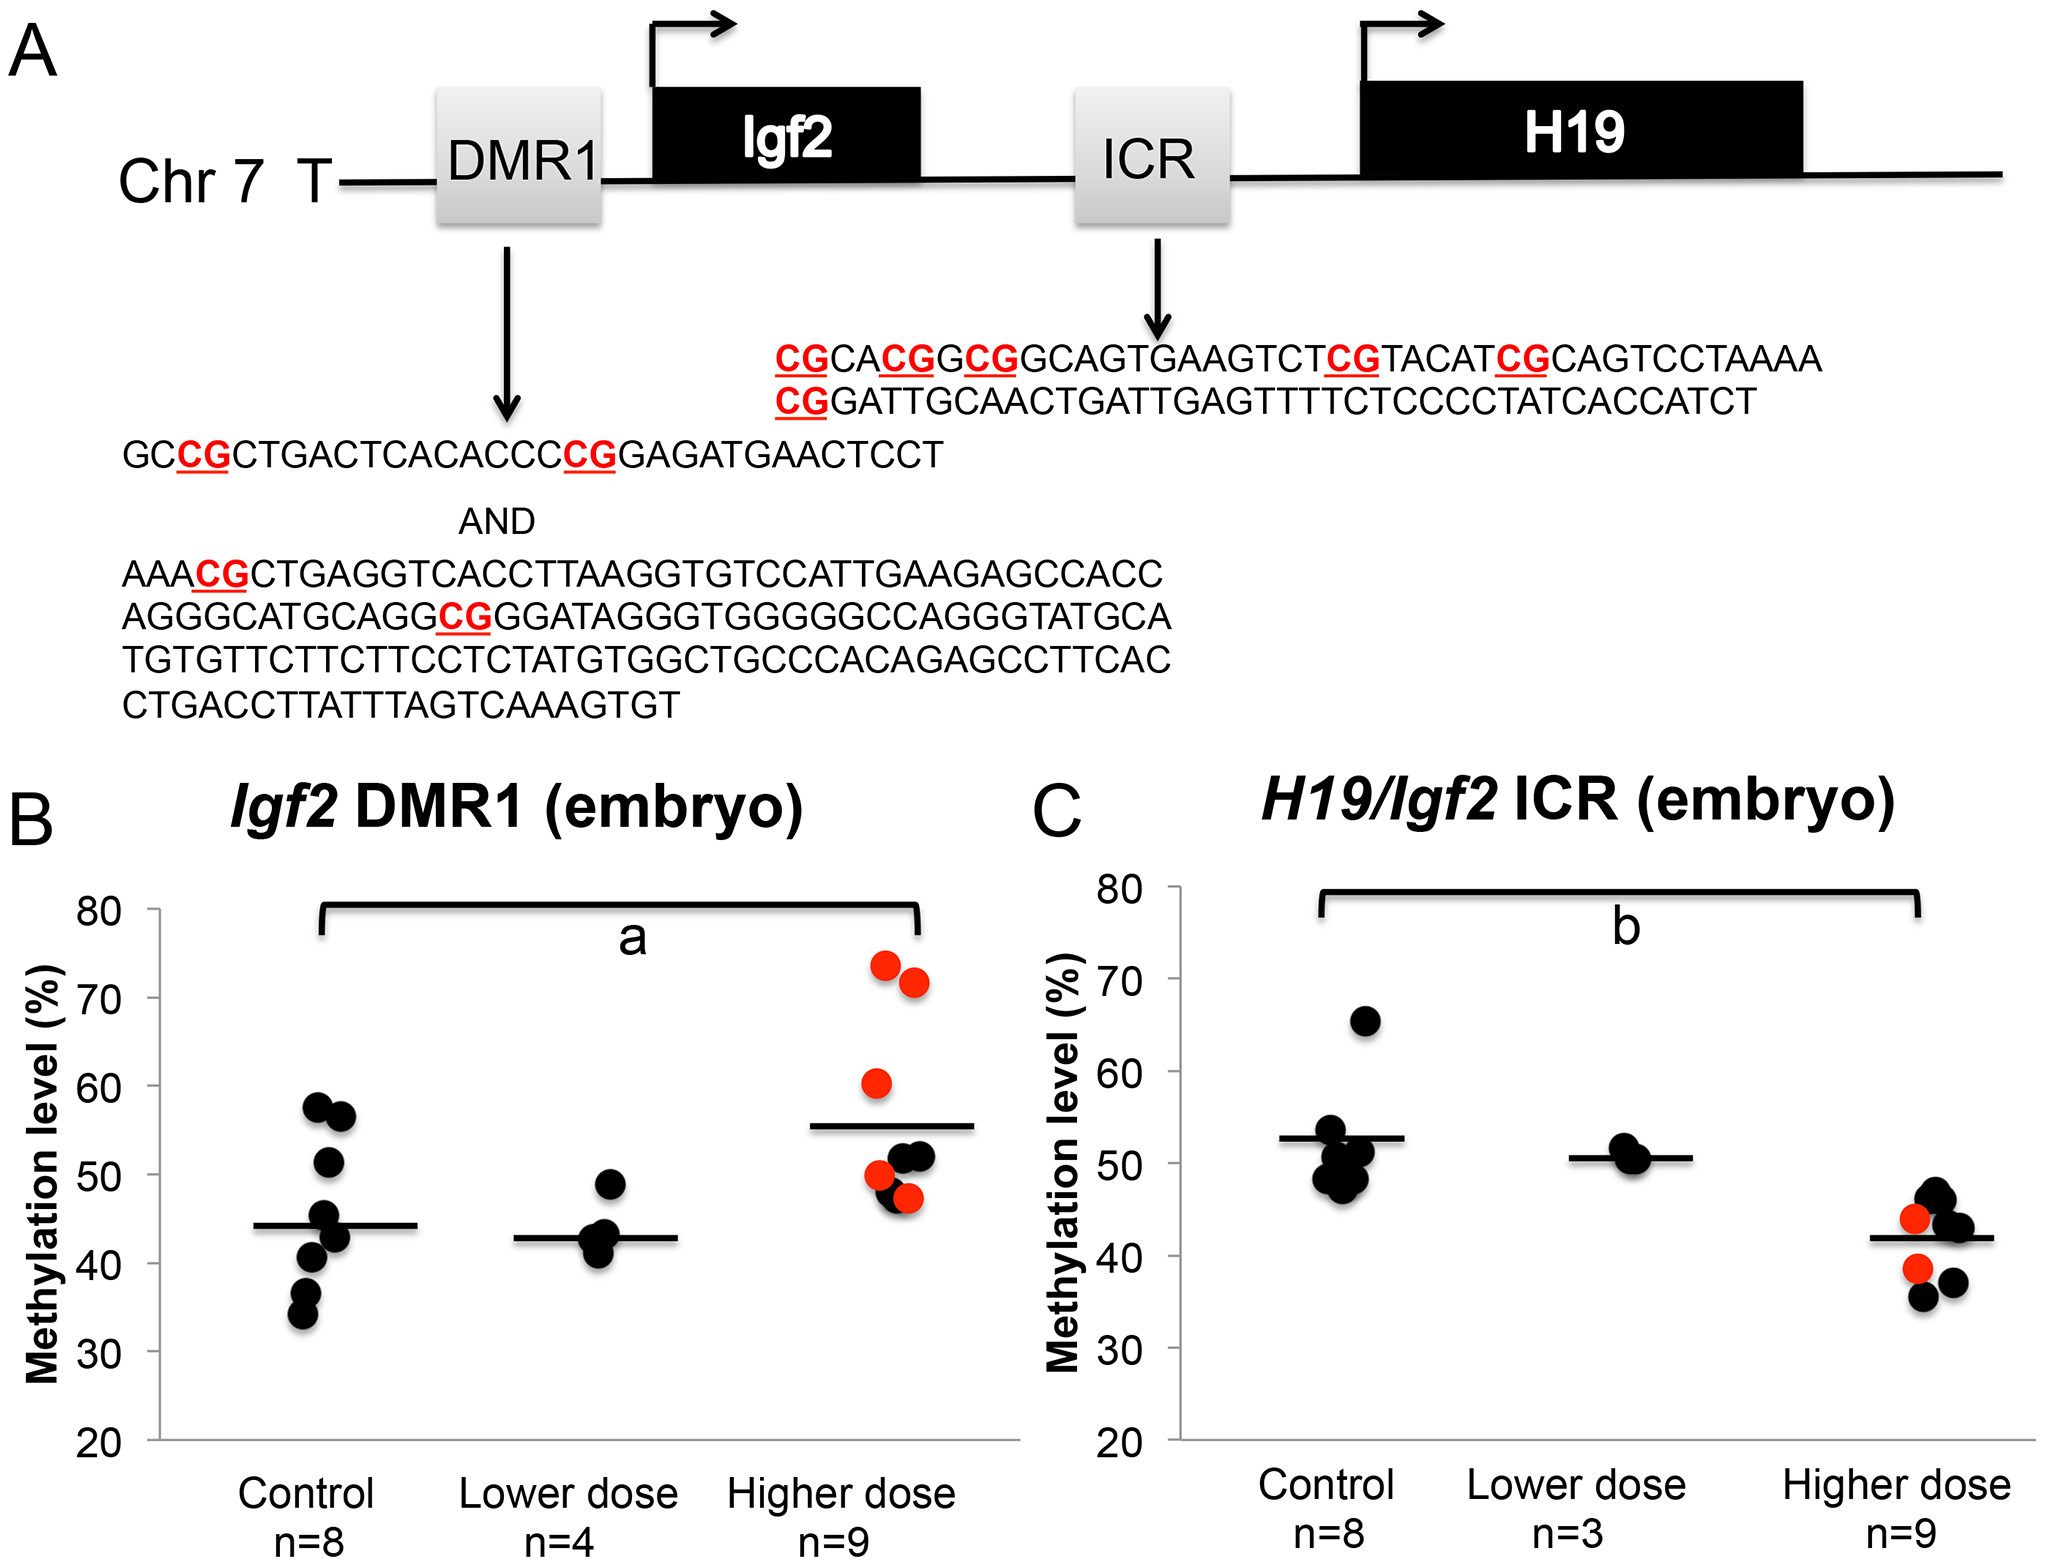 BPA exposure altered DNA methylation at the <i>Igf2</i> DMR1 and <i>H19/Igf2</i> ICR in the embryos.